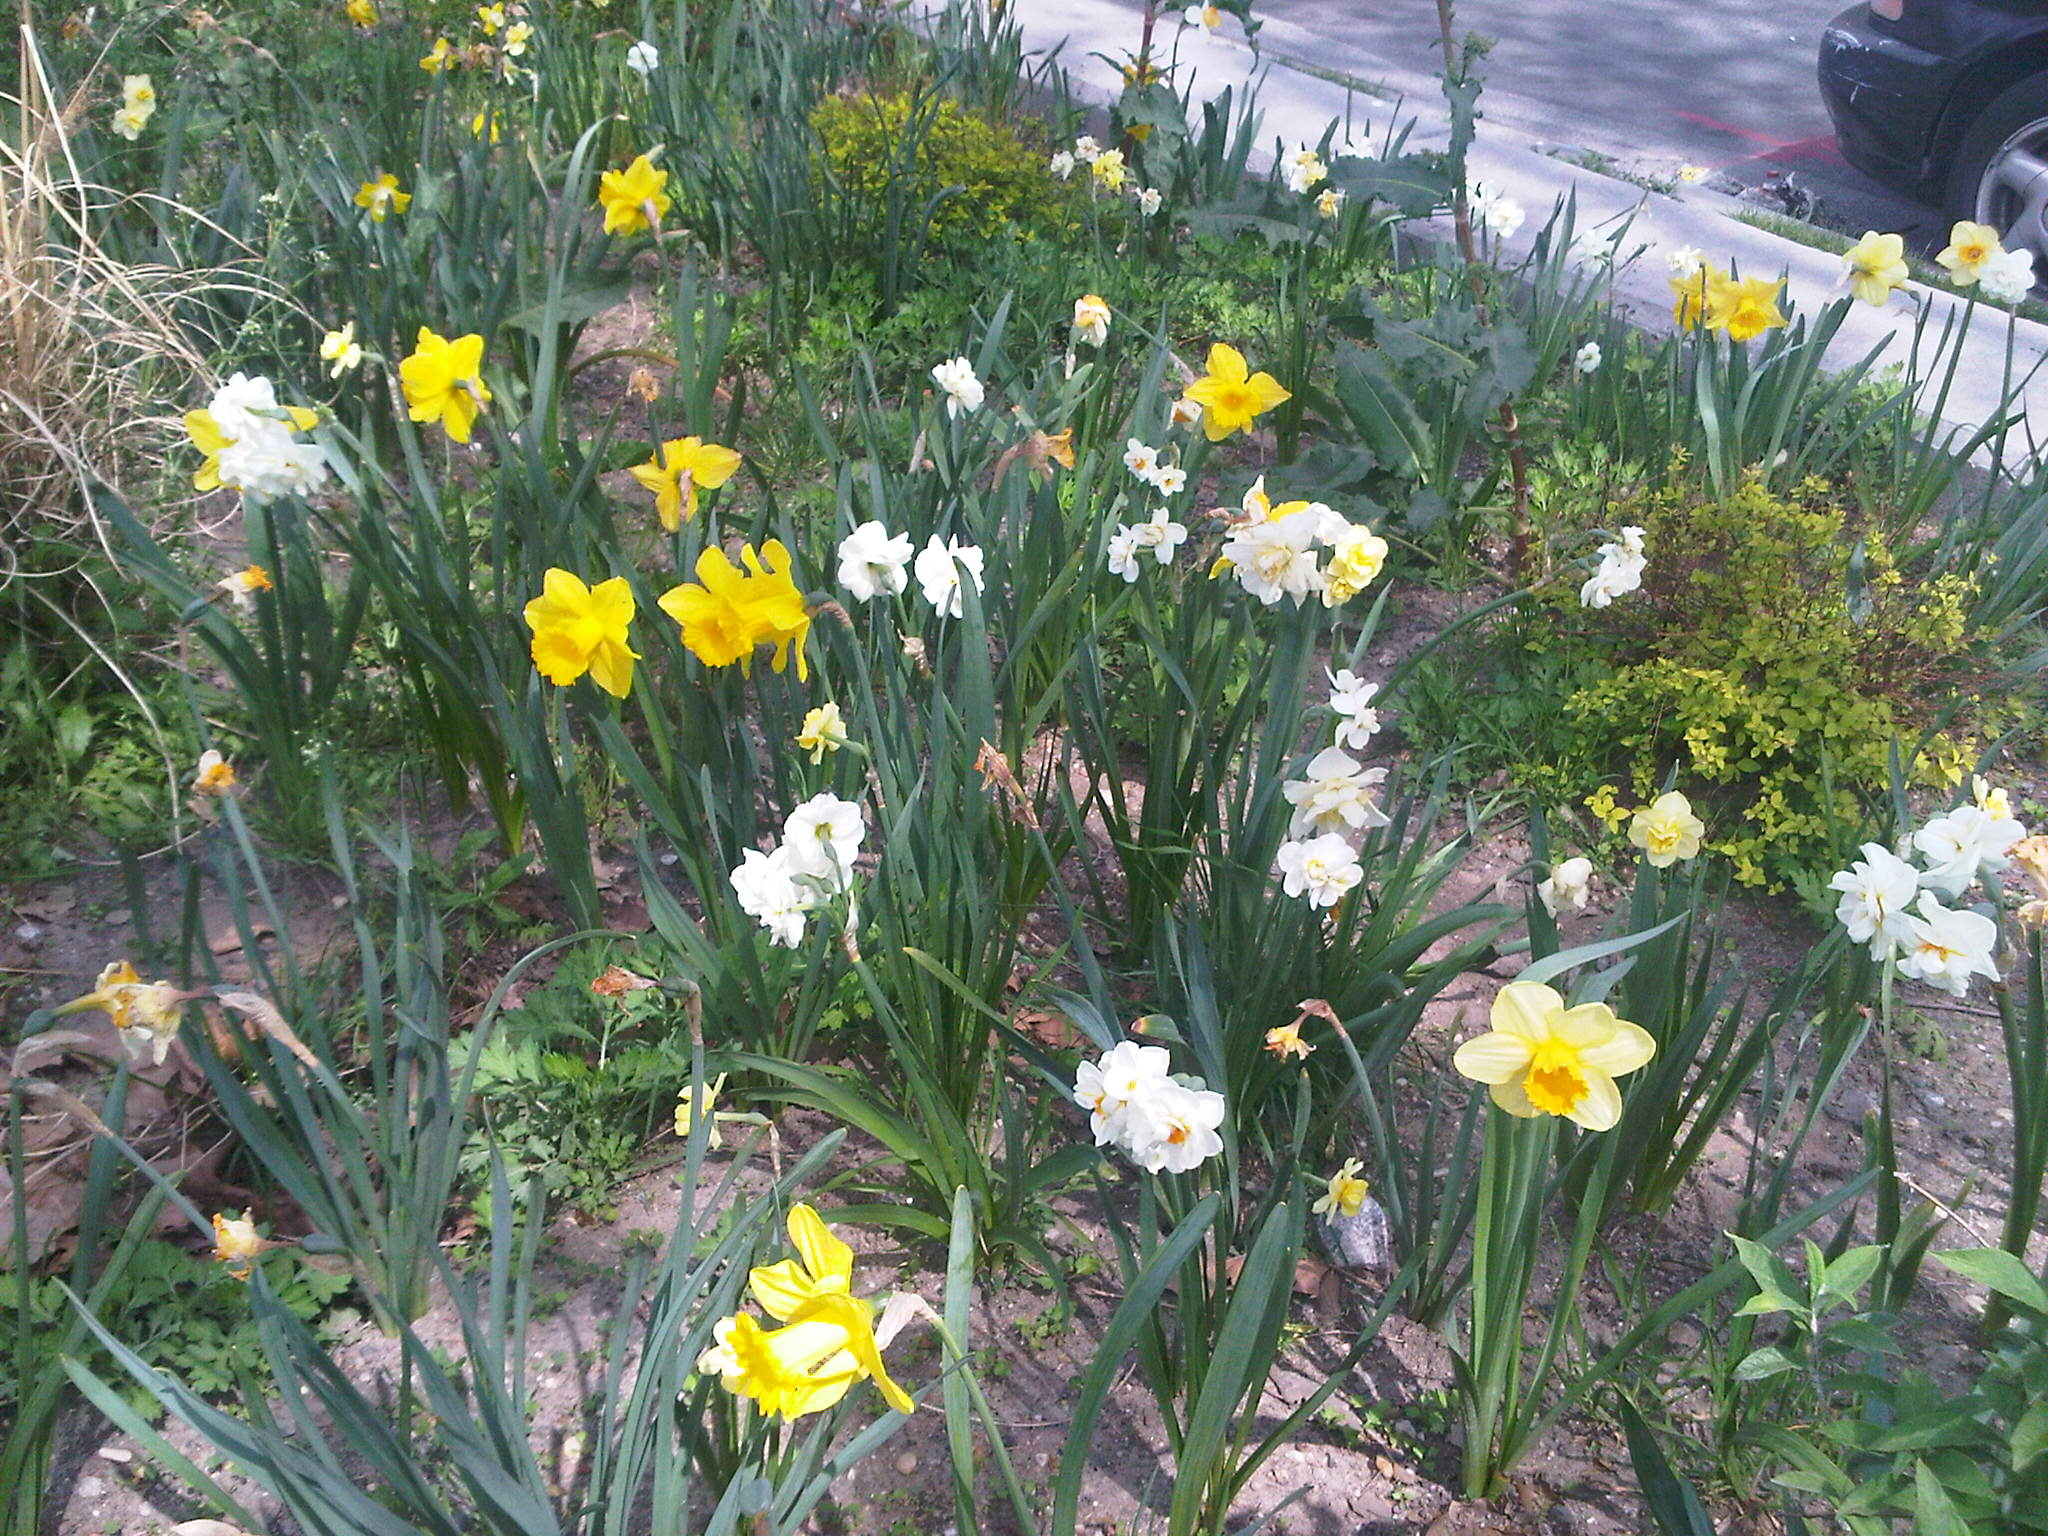 When how to plant daffodil bulbs - Join Your Neighbors And The Jackson Heights Beautification Group For A Community Wide Planting Of The 34th Ave Median From 69th St To Junction Blvd